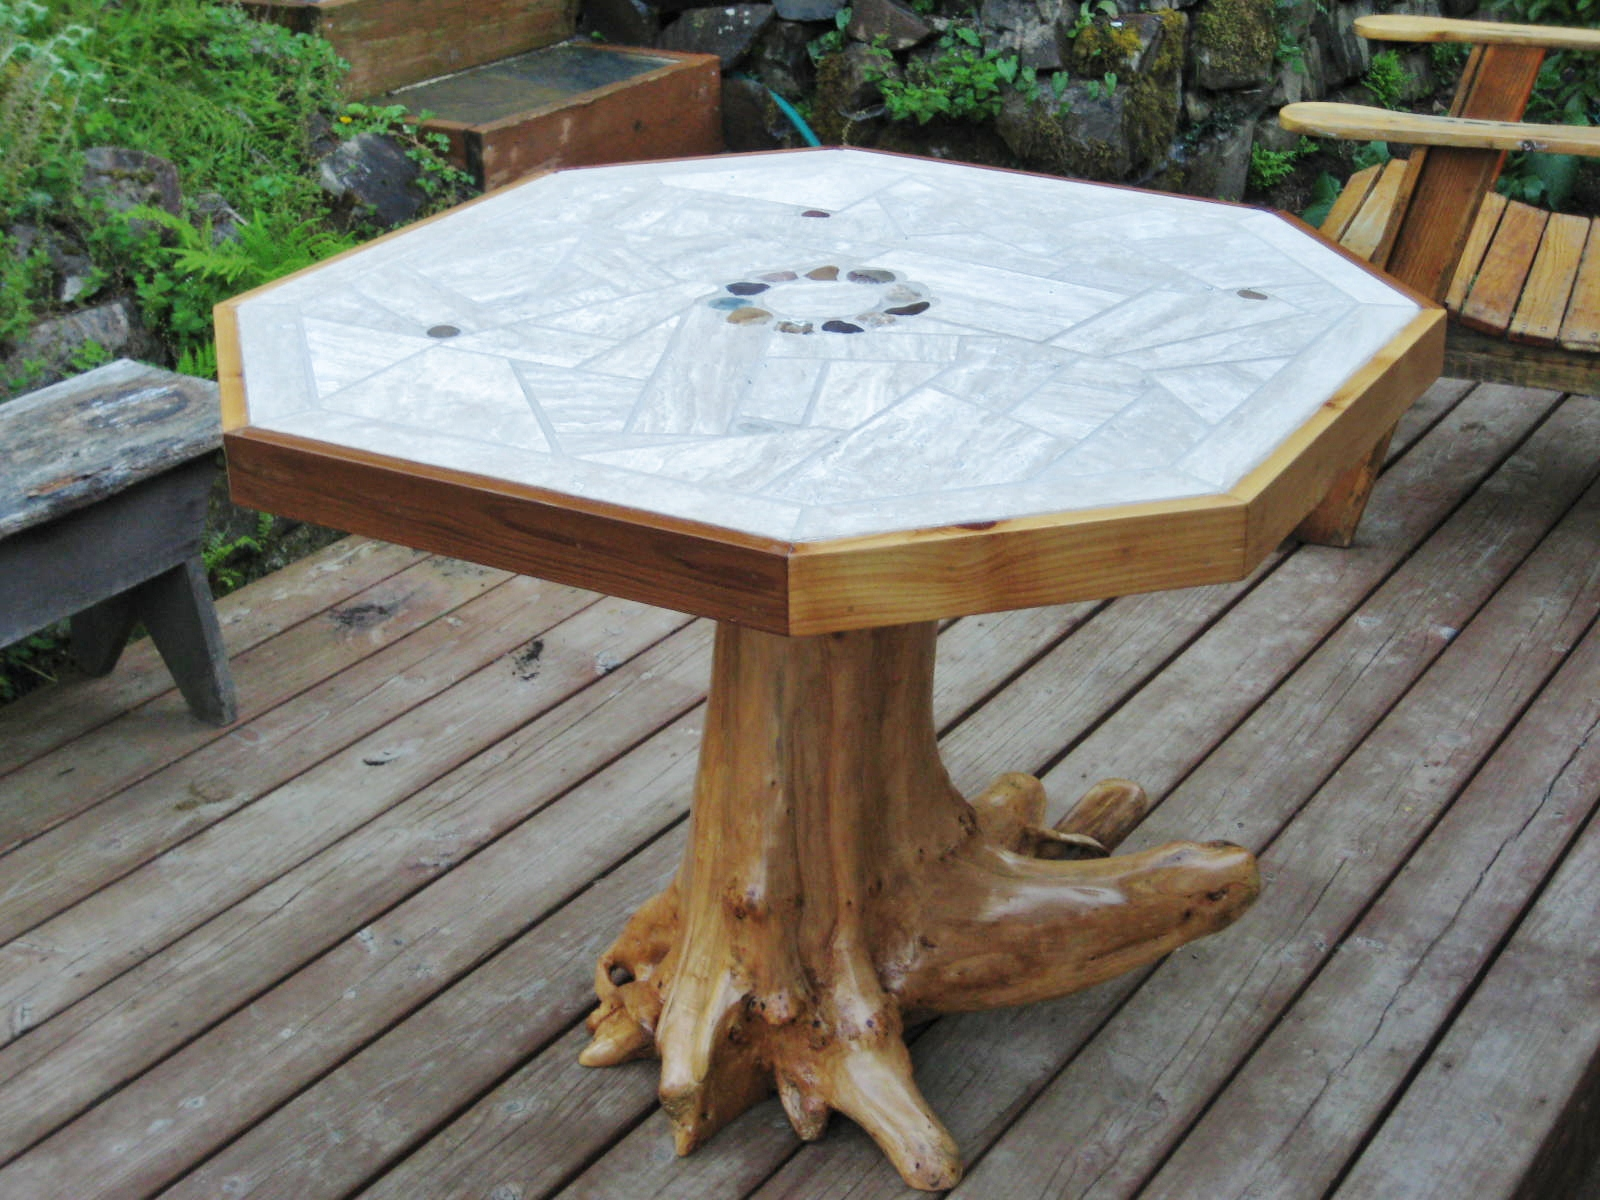 tree stump furniture. Mosaic Tile Patio Table With Tree Stump Pedestal Furniture